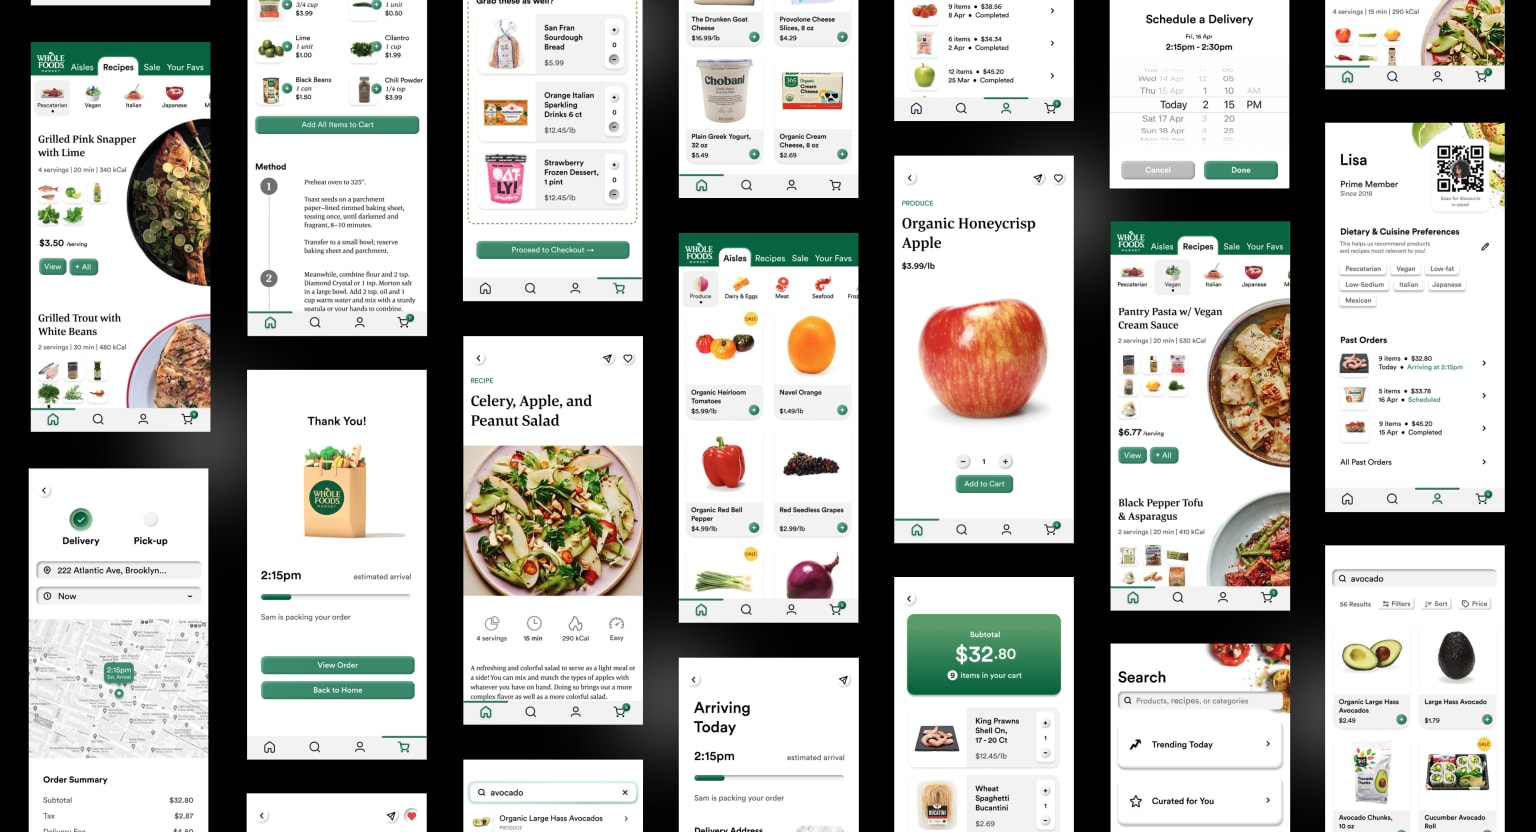 Redesigning the Whole Foods Market App